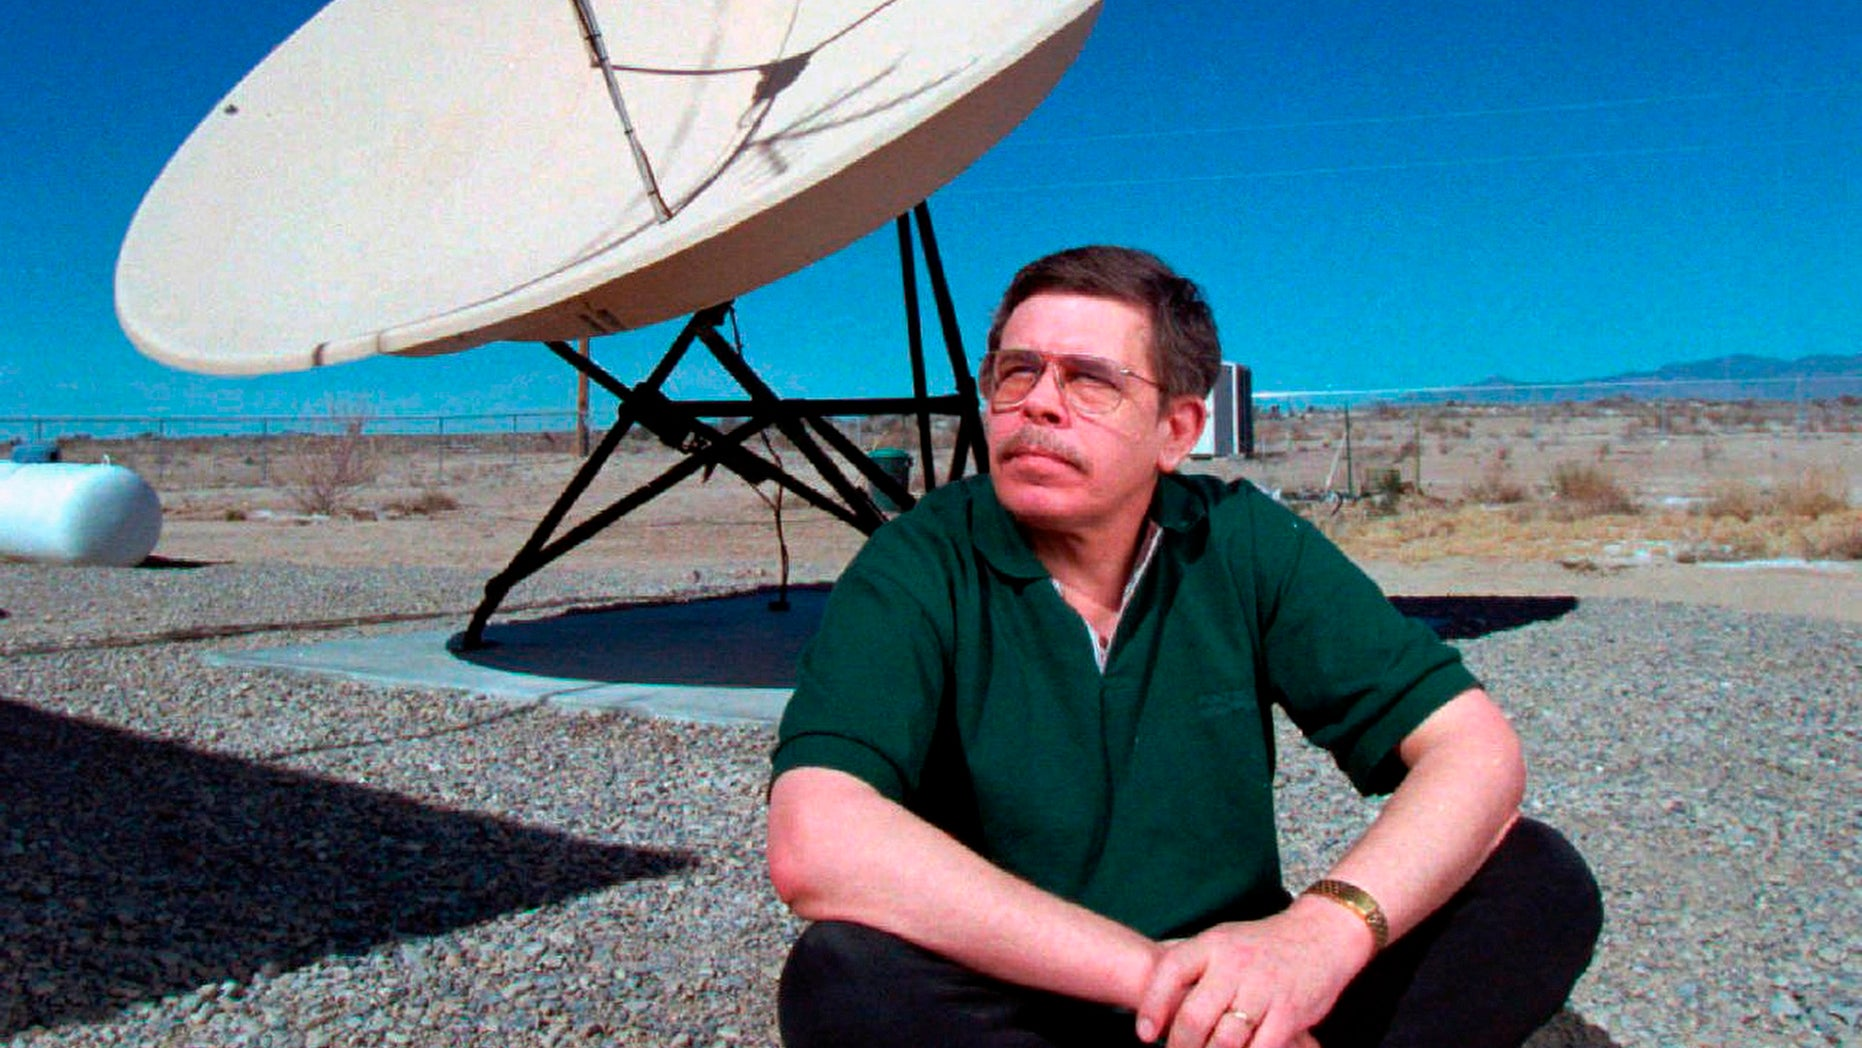 Art Bell, seen in this March 1997 photo, died Friday, Nye County Sheriff Sharon Wehrly confirmed. Bell's fans may pause to mull the significance of his having passed on Friday the 13th, of all days.